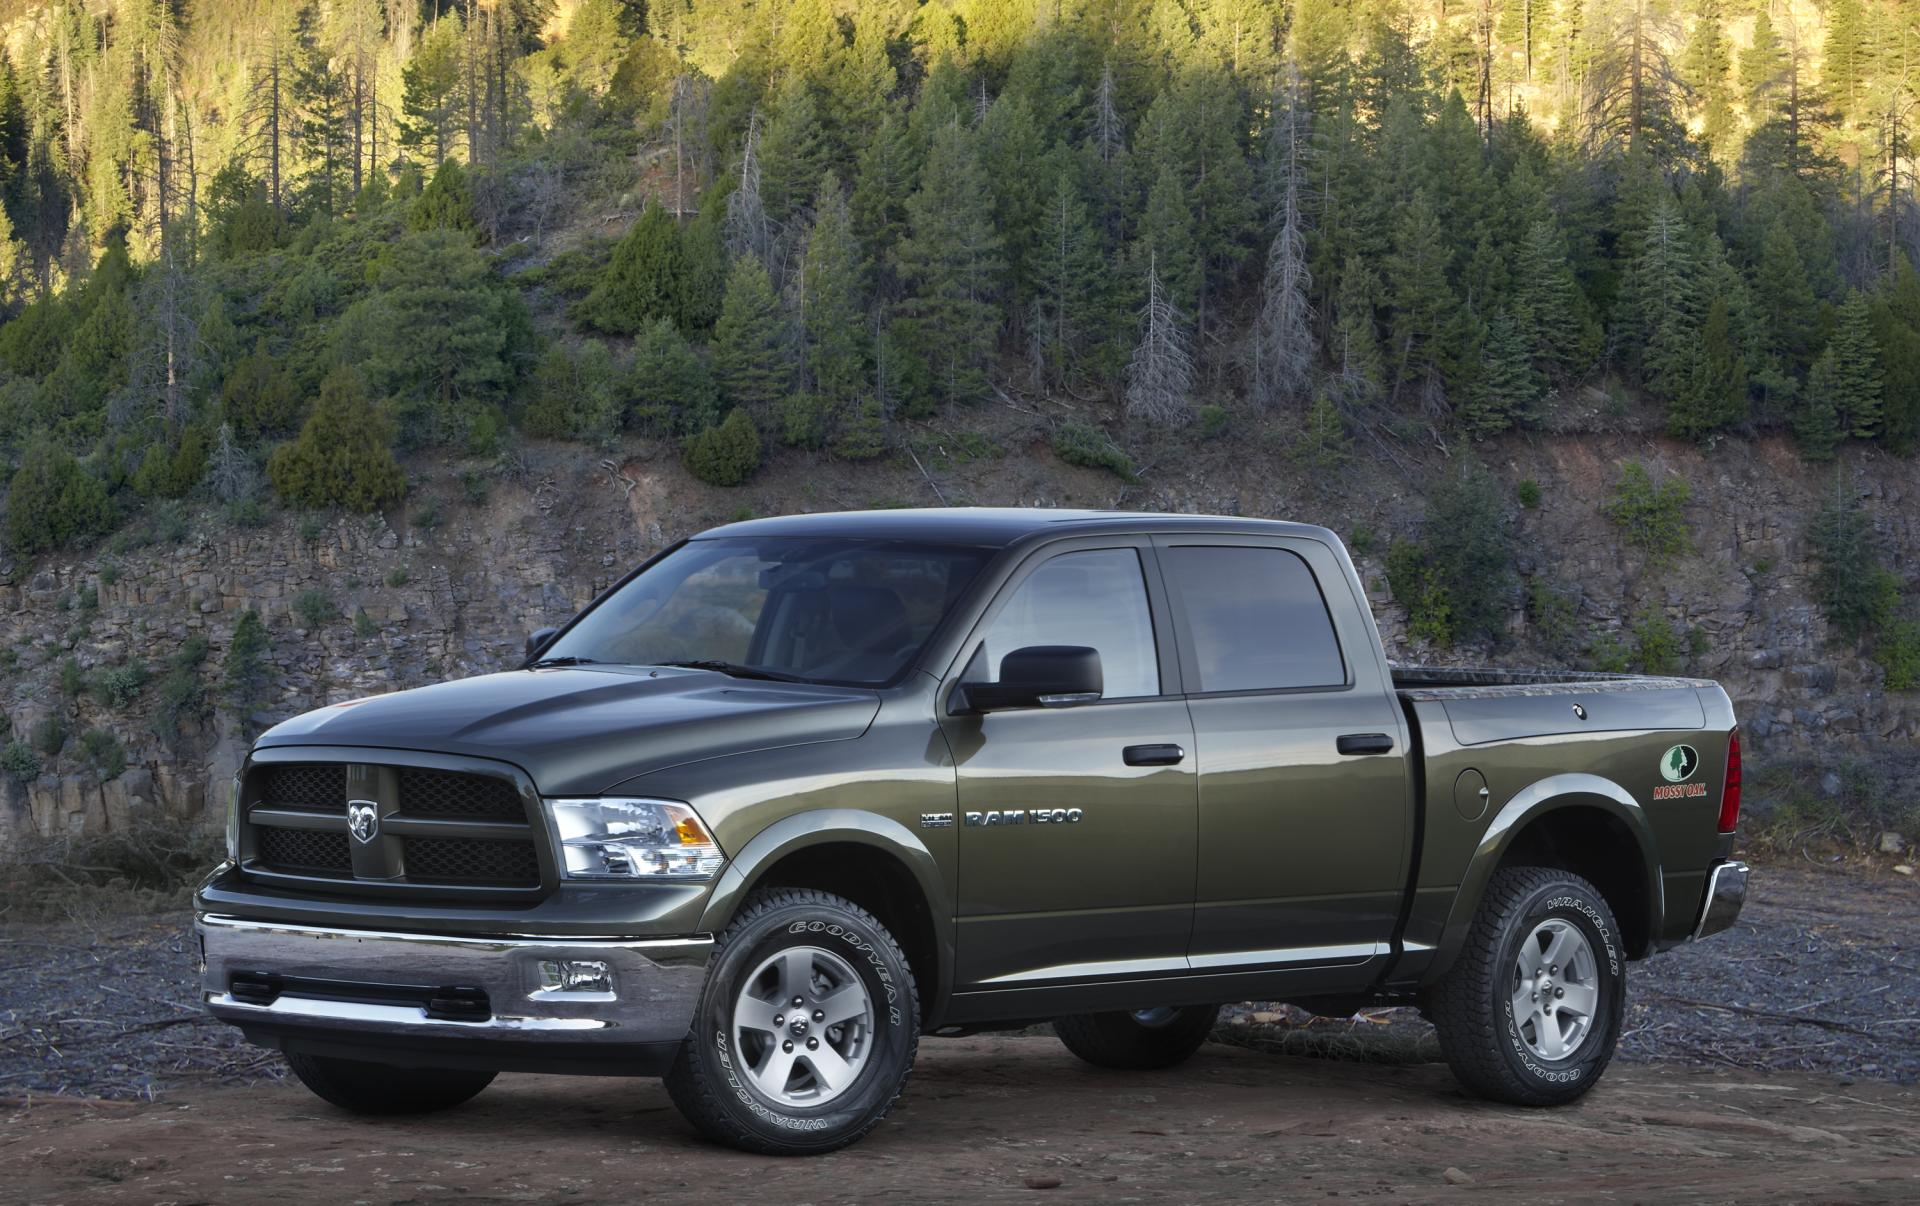 2012 Ram Mossy Oak Edition Pictures And Wallpaper - Dodge Ram Olive Green Truck - HD Wallpaper